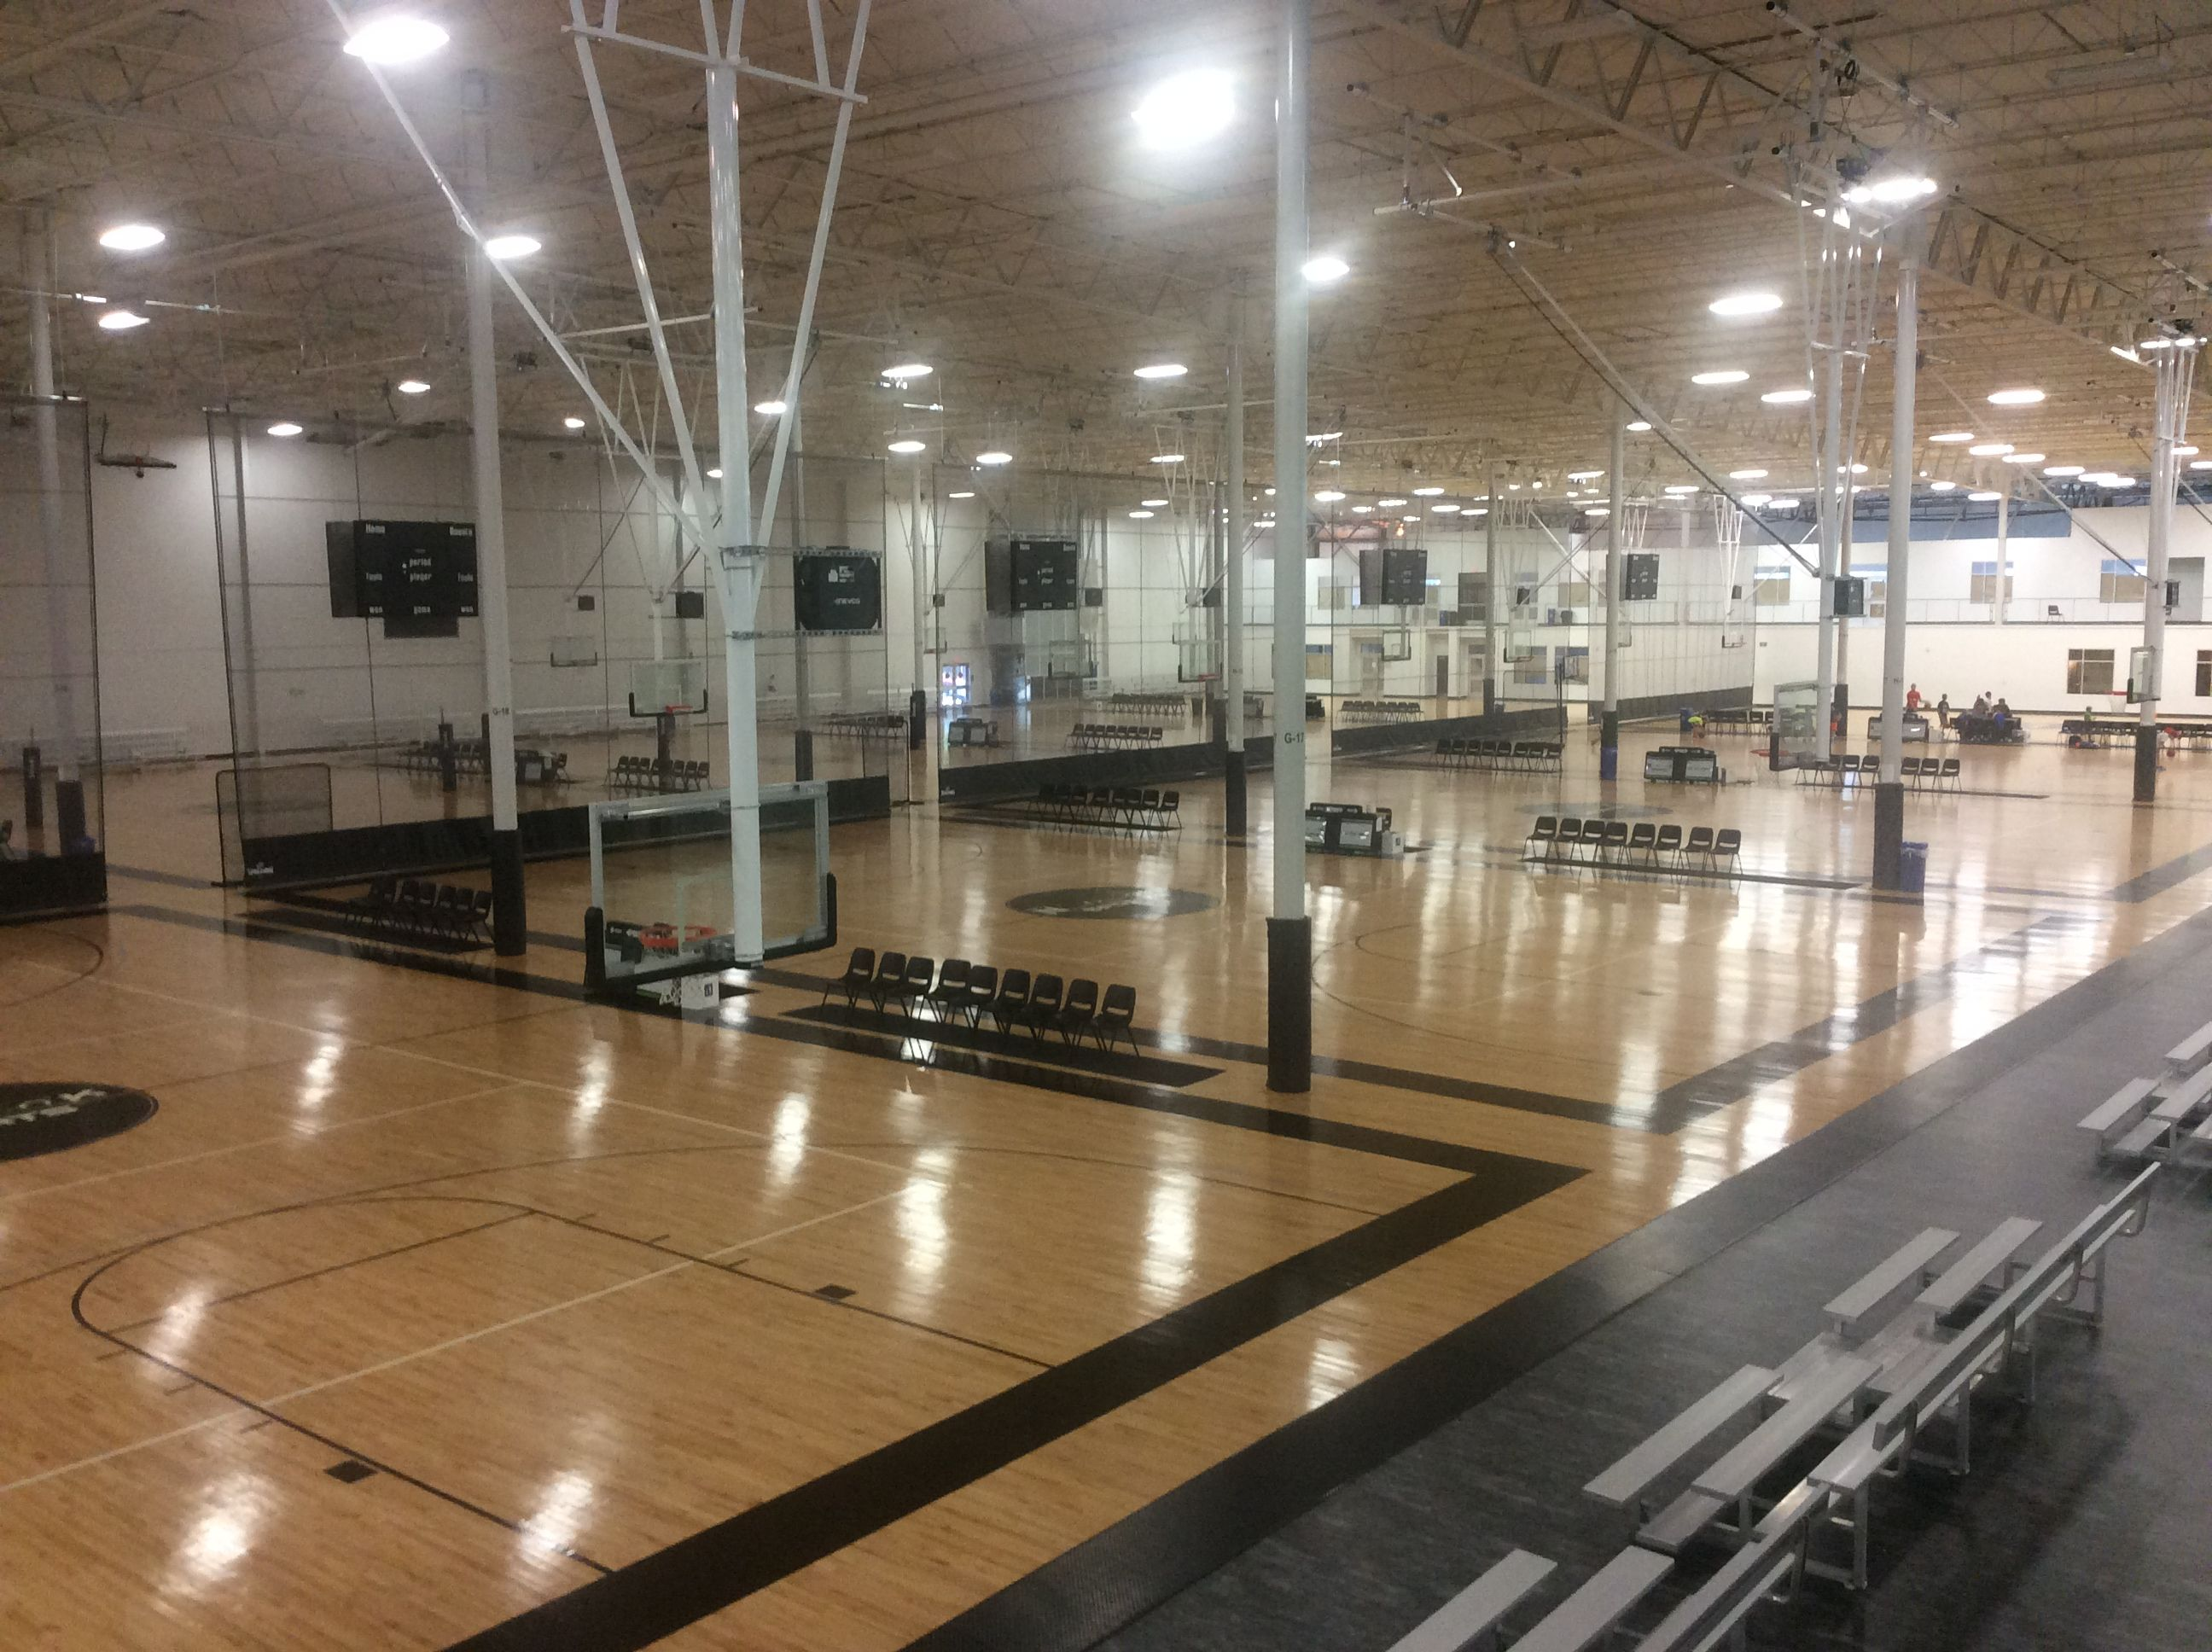 The Basketball Courts Also Used For Volleyball Sometimes Spooky Nook Sports Spooky Nook Basketball Court